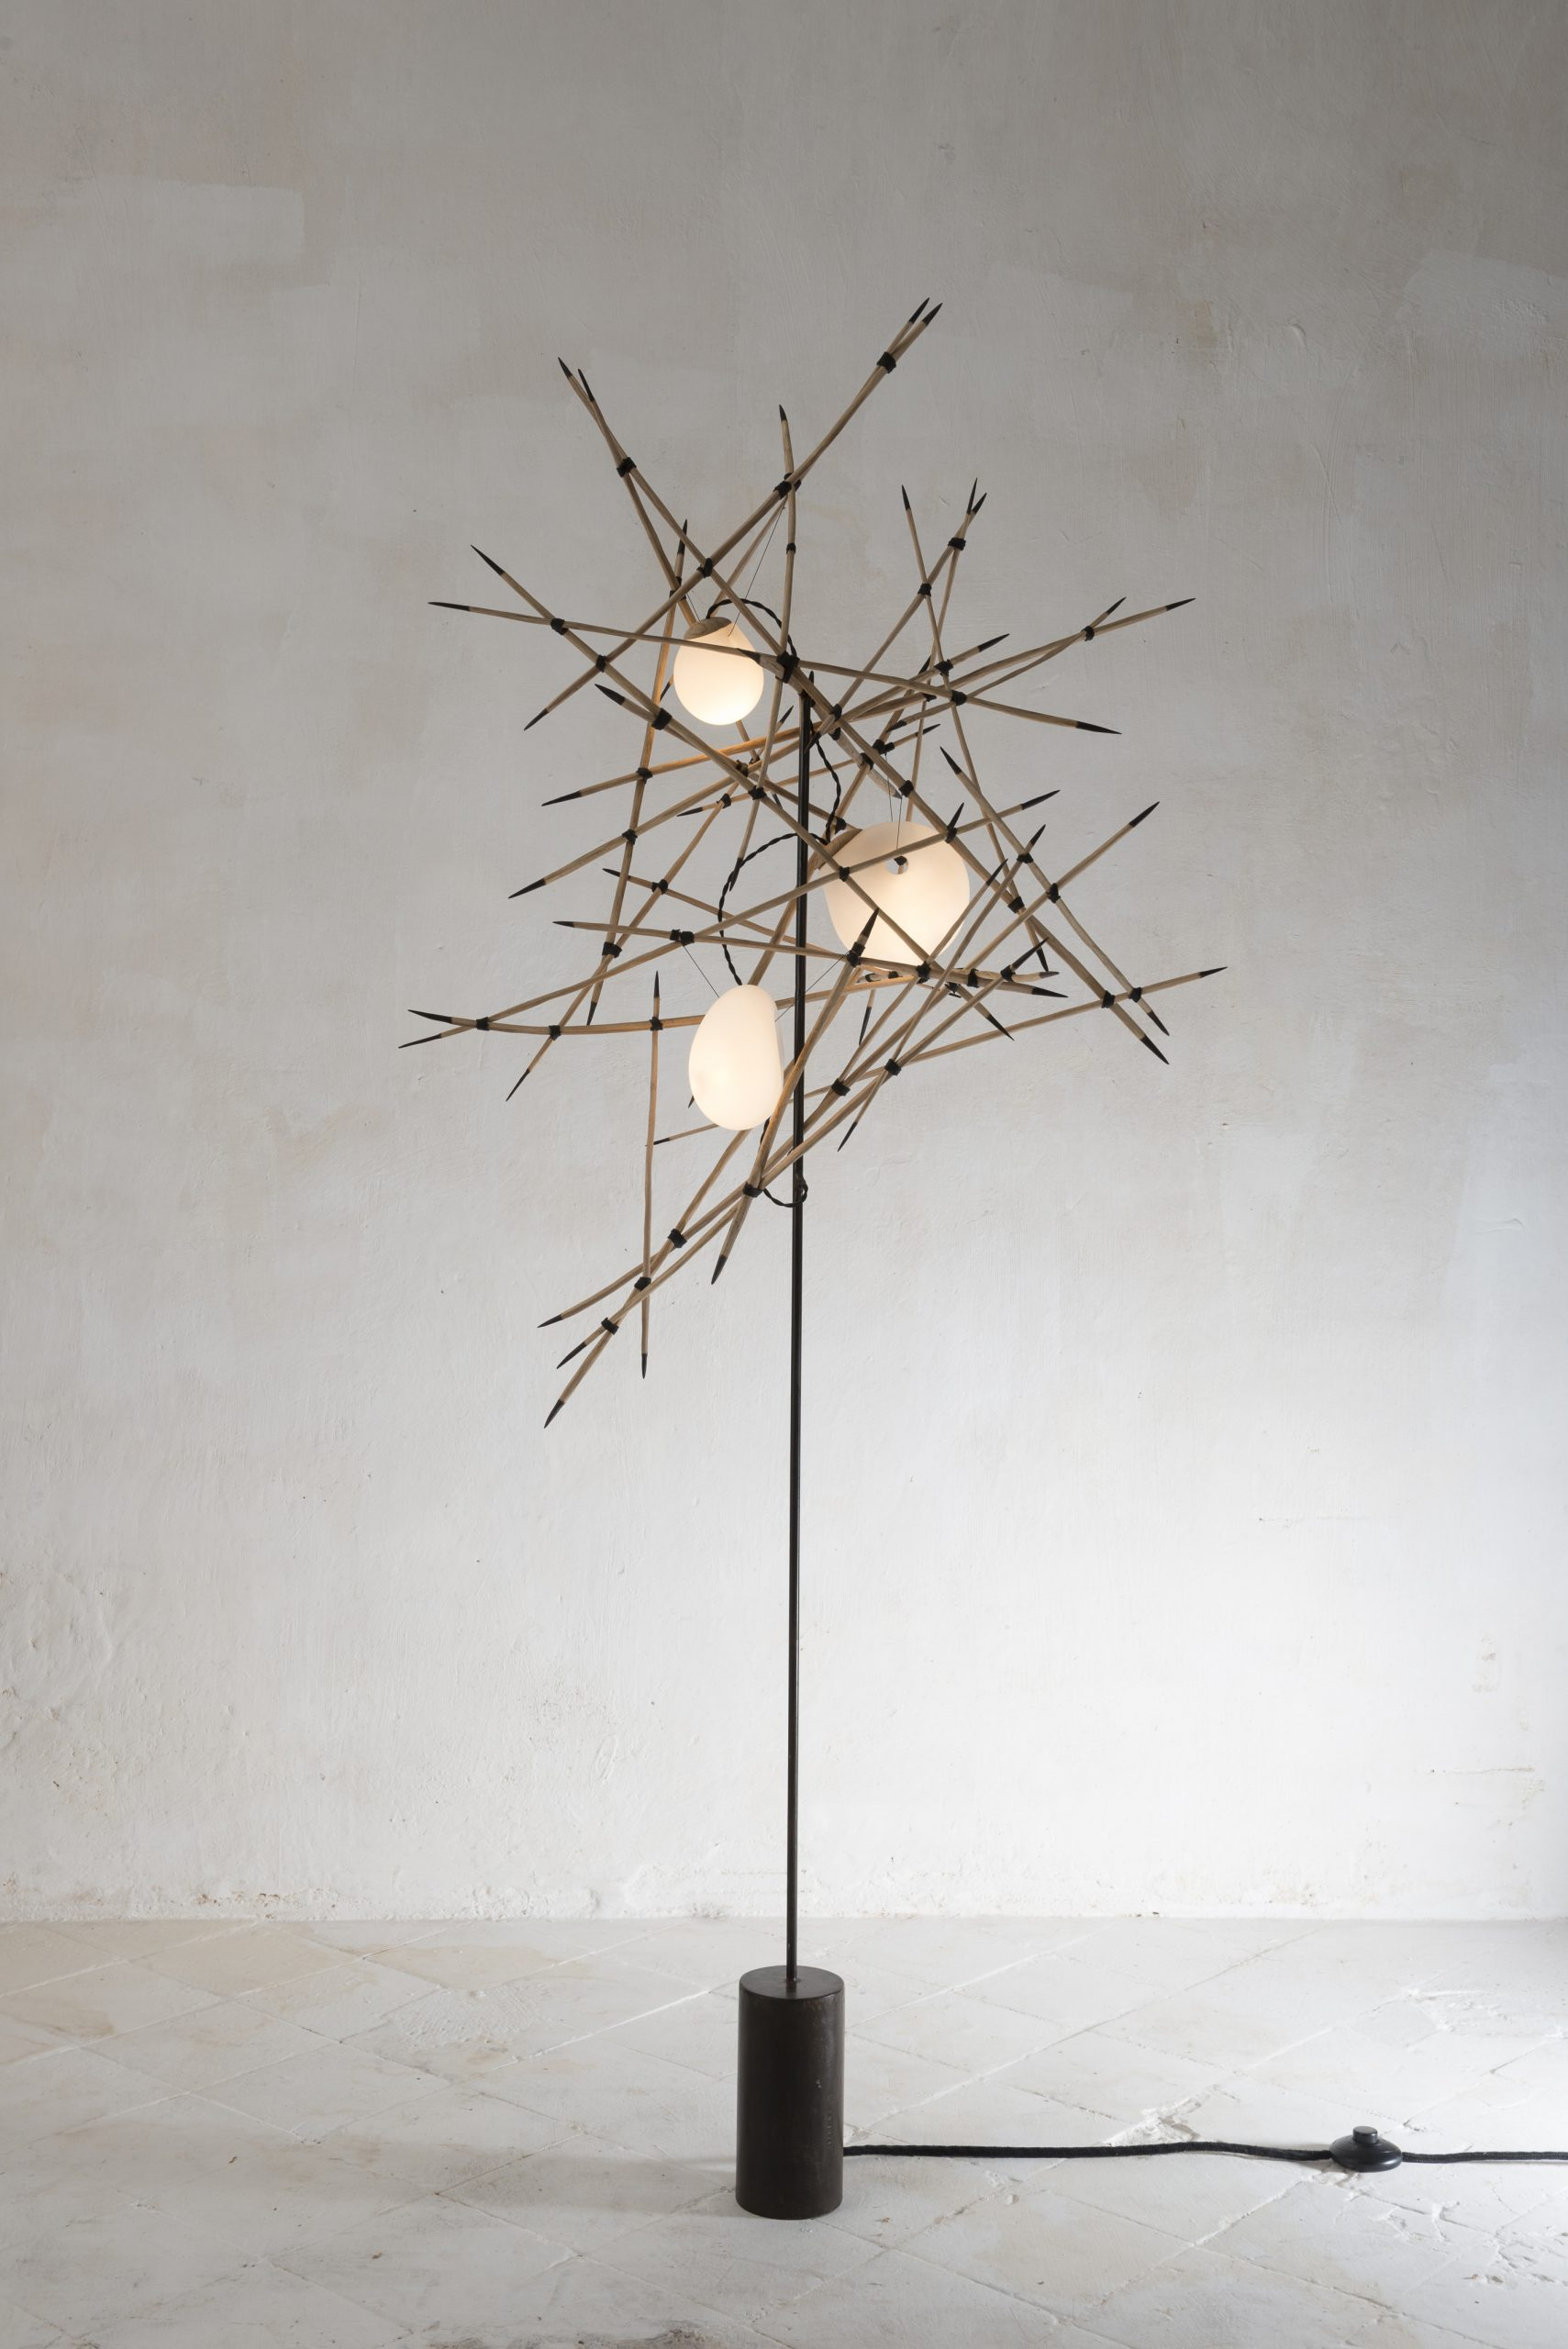 A floor lamp that looks like handfuls of matchsticks